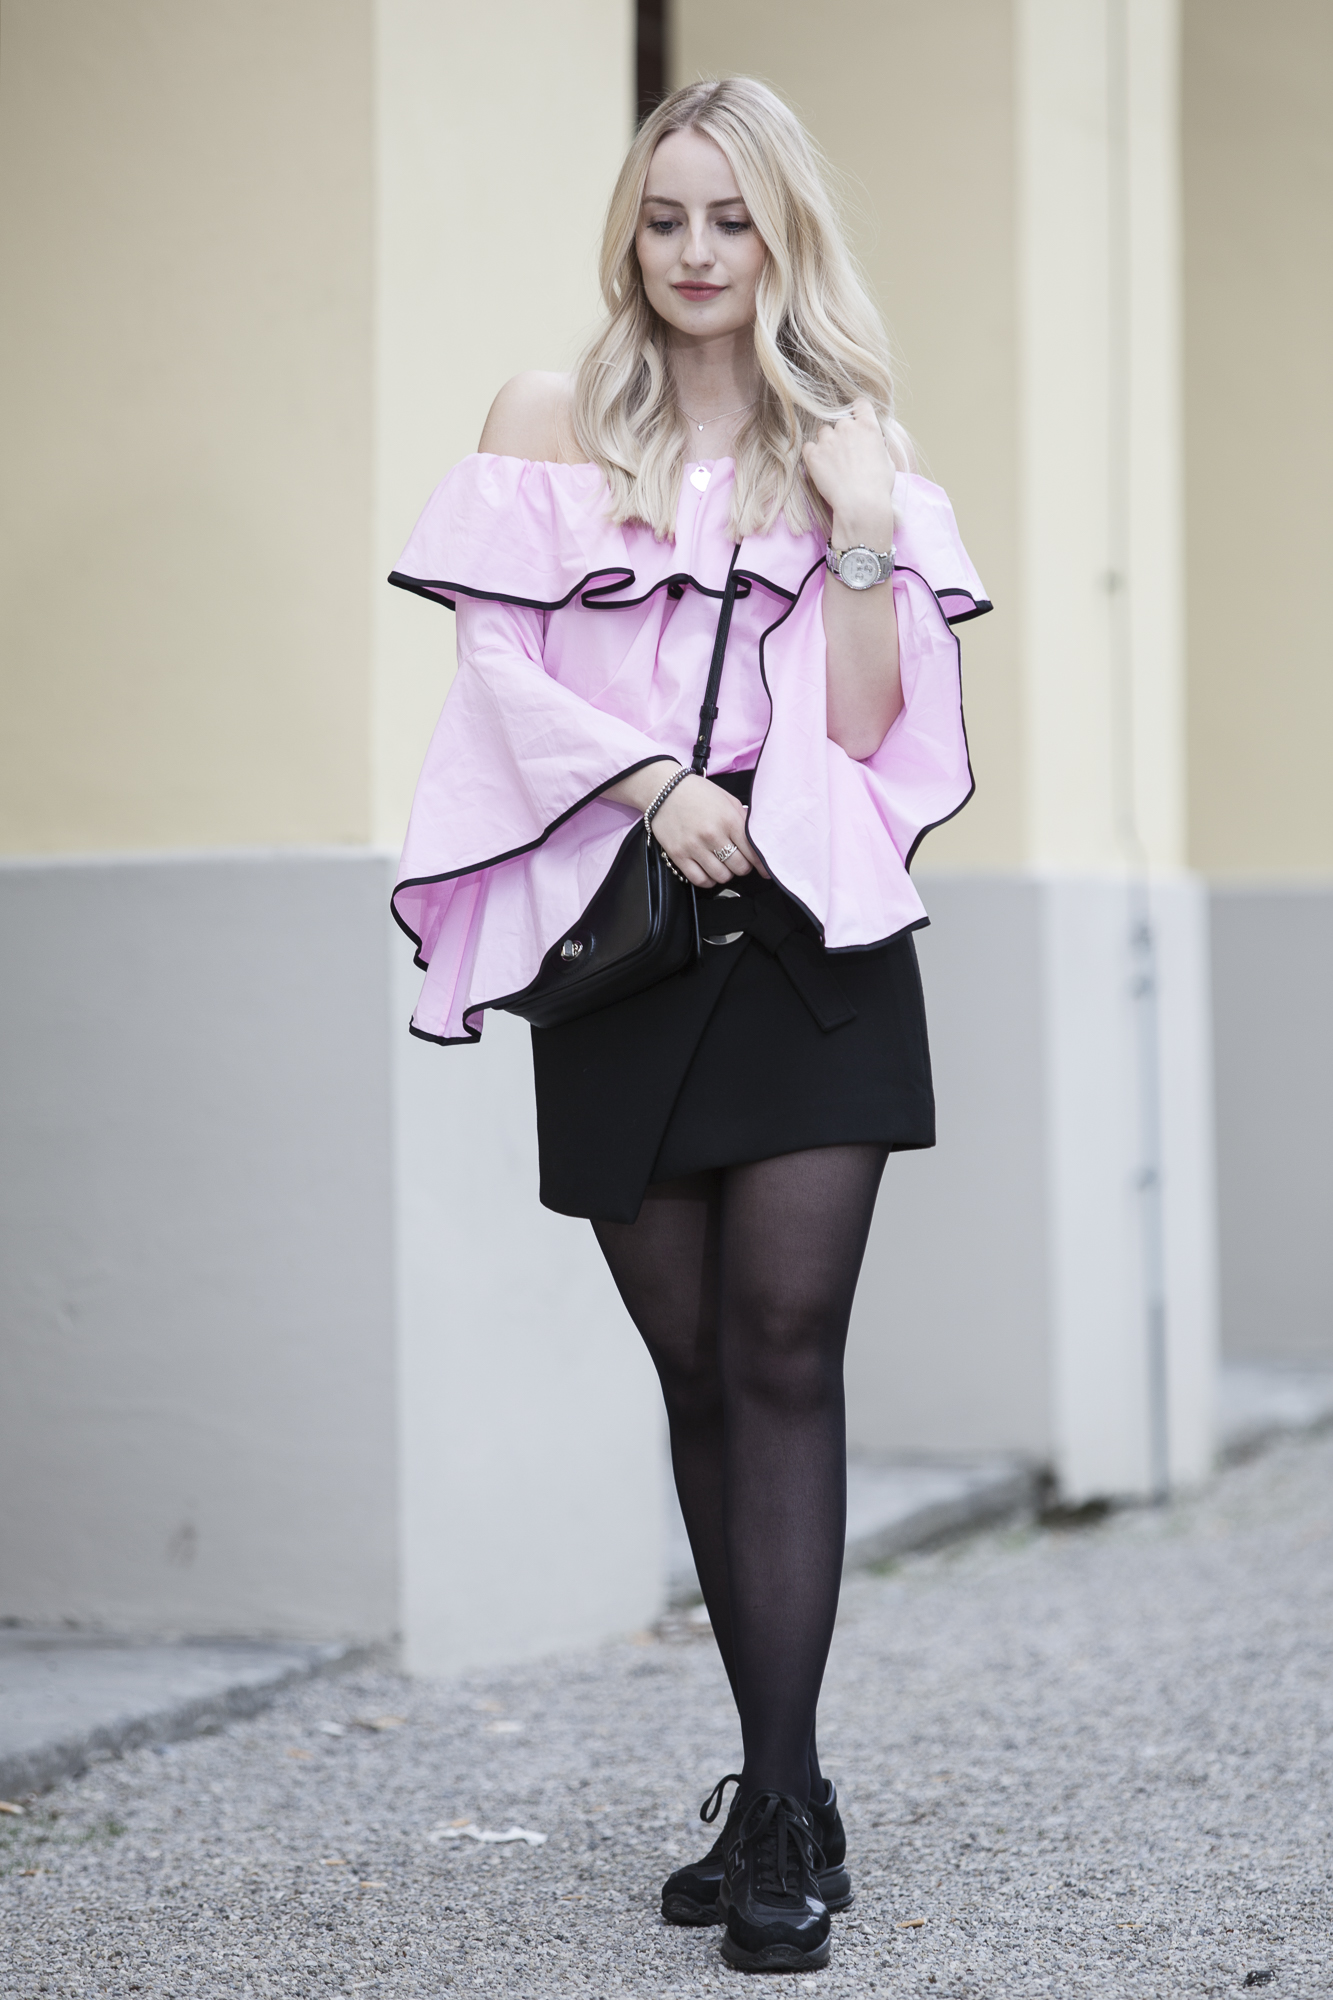 Millennial Pink - New Look KIM ENGEL